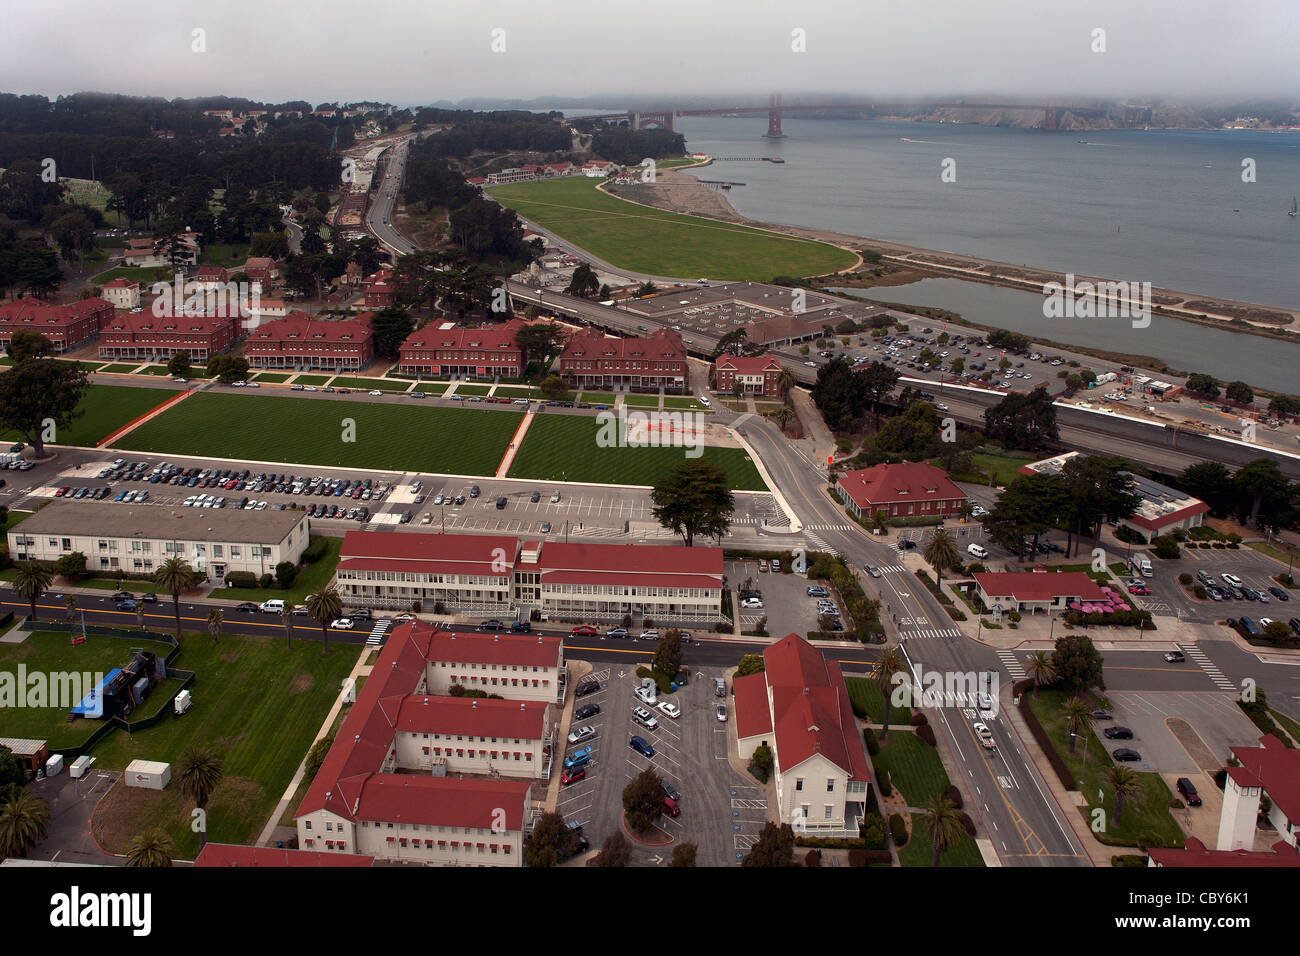 aerial photograph Presidio of San Francisco - Stock Image